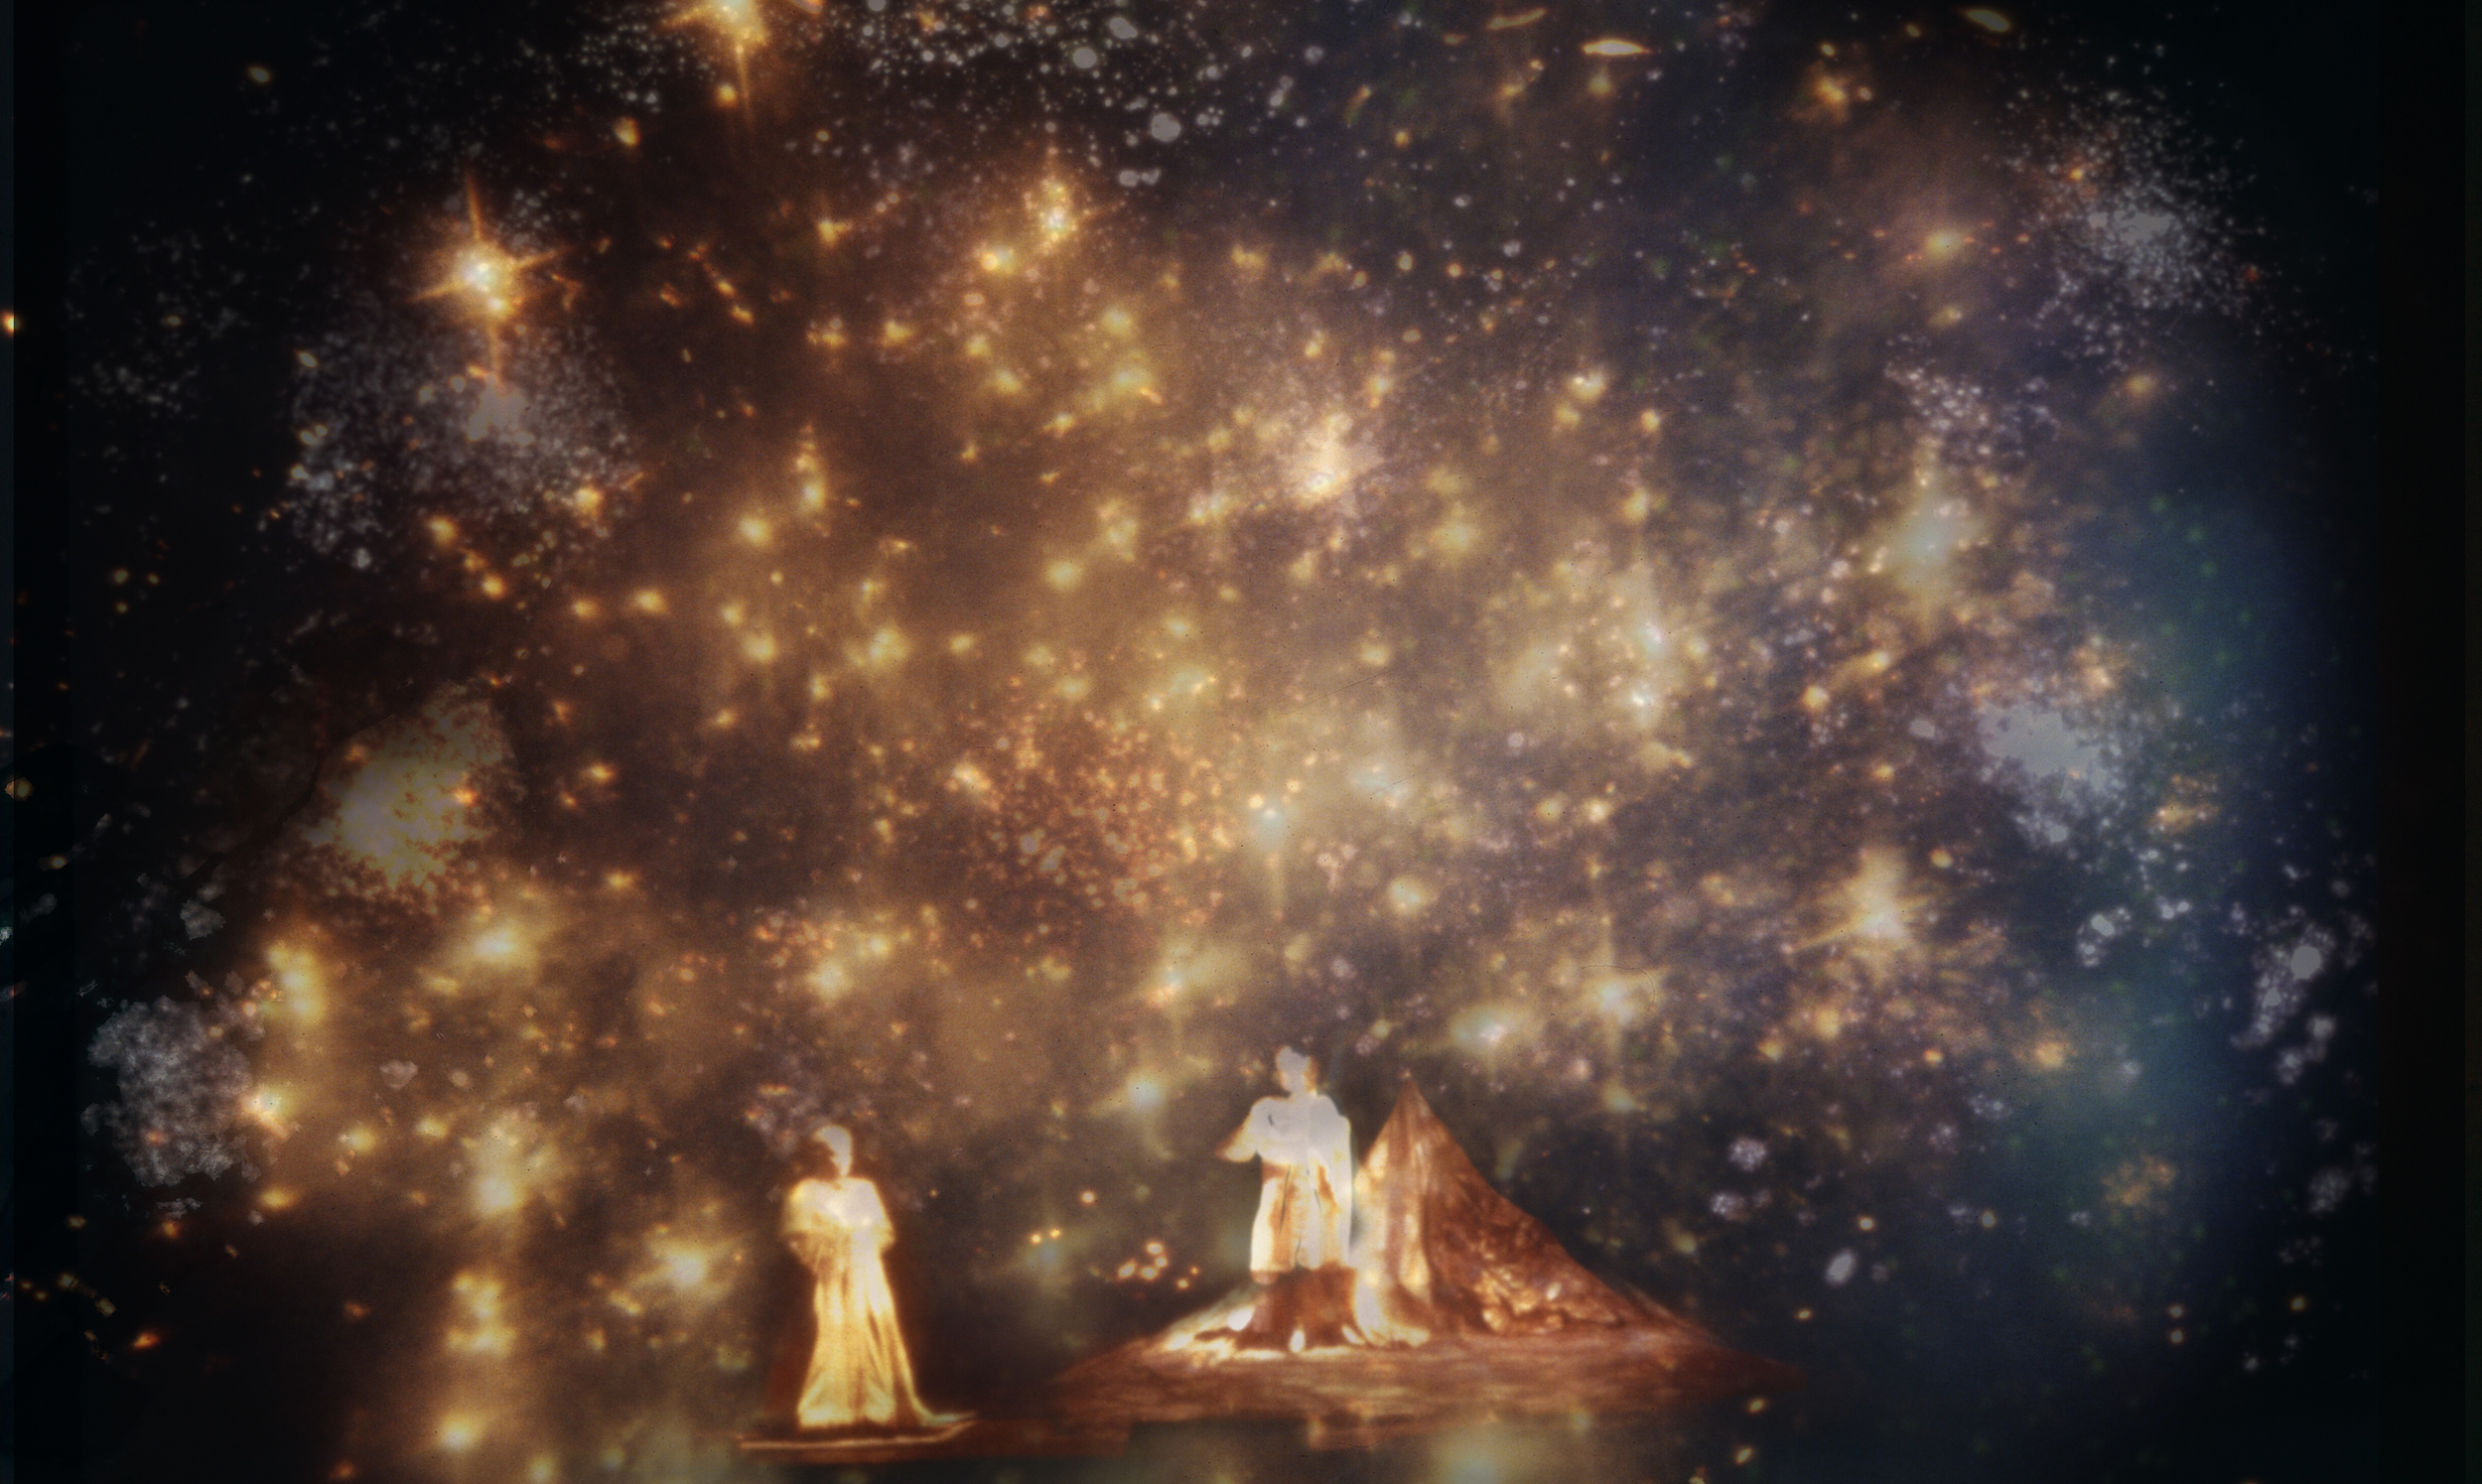 Opera begins in a celestial space inhabited by godlike creatures.